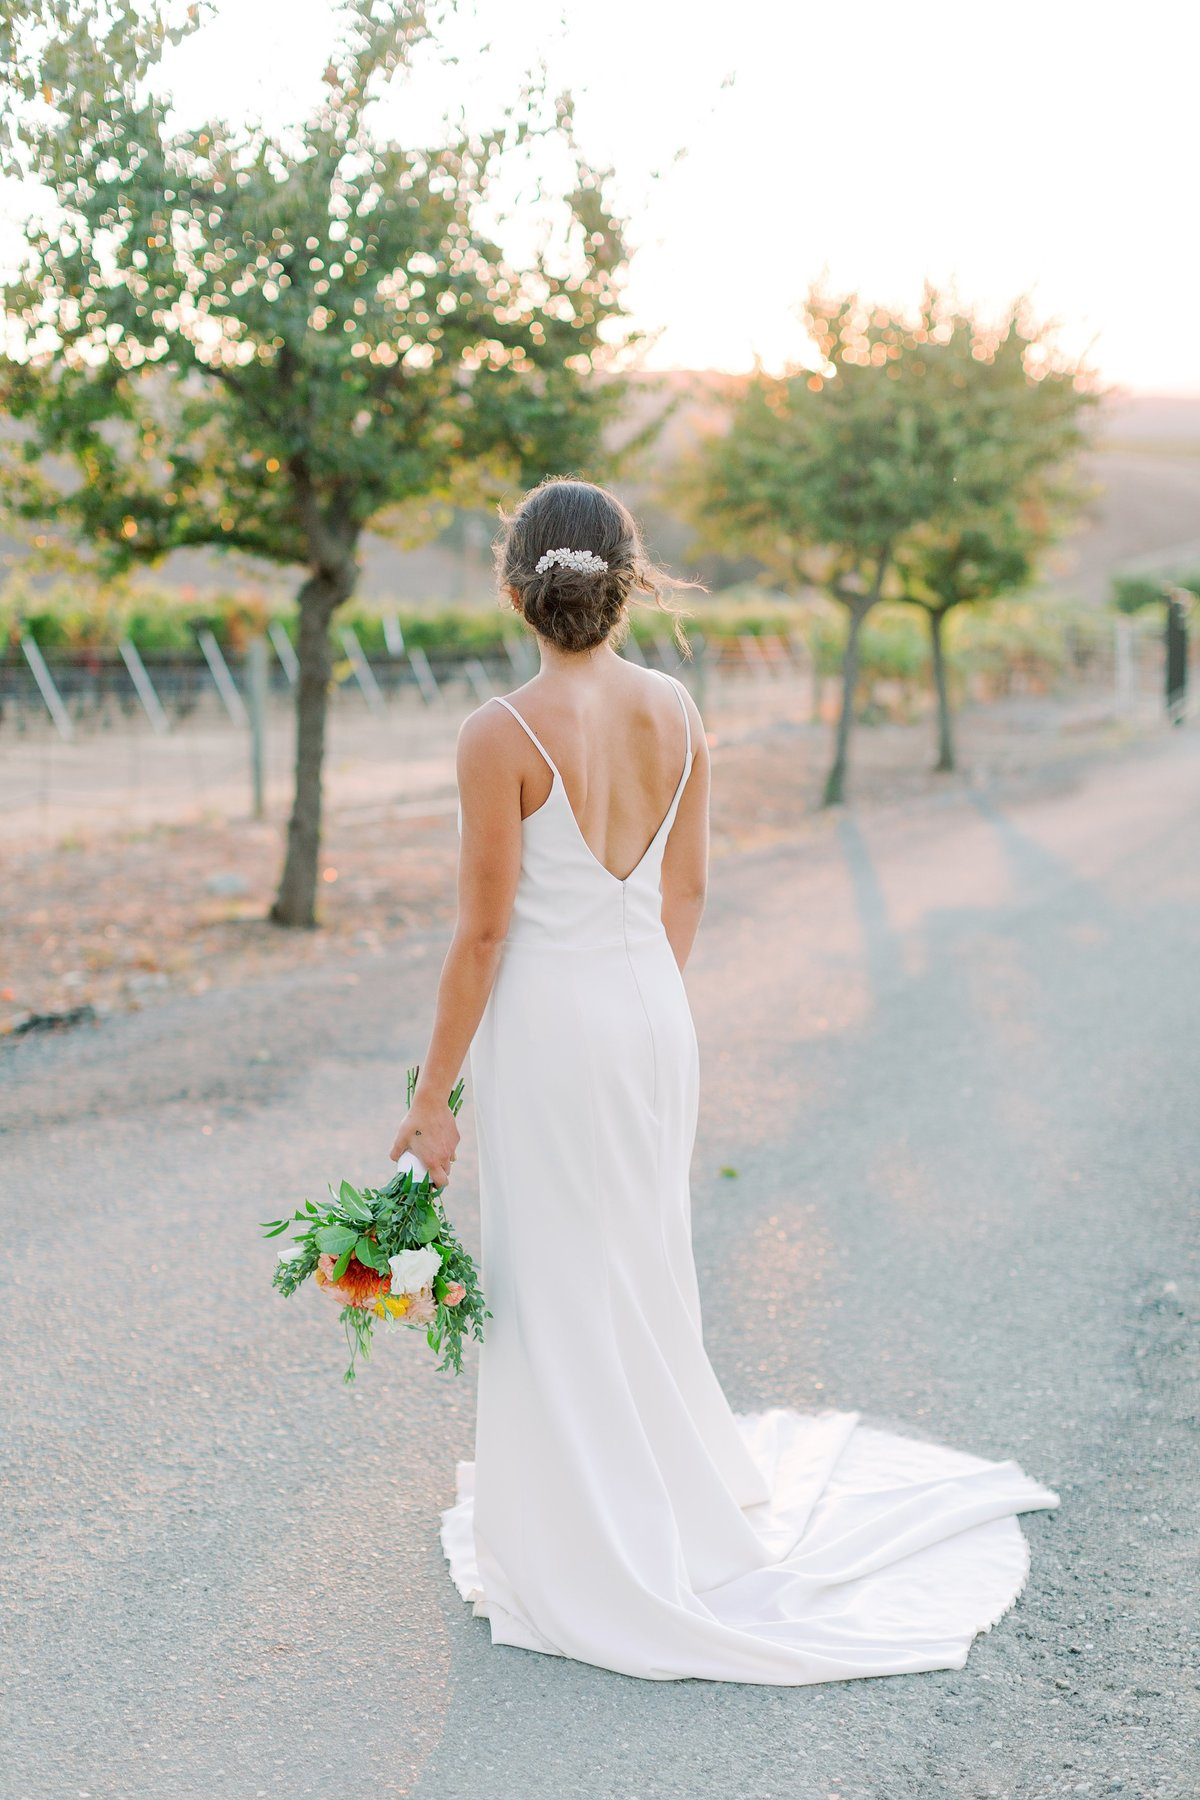 20191020 Modern Elegance Wedding Styled Shoot at Three Steves Winery Livermore_Bethany Picone Photography-199_WEB